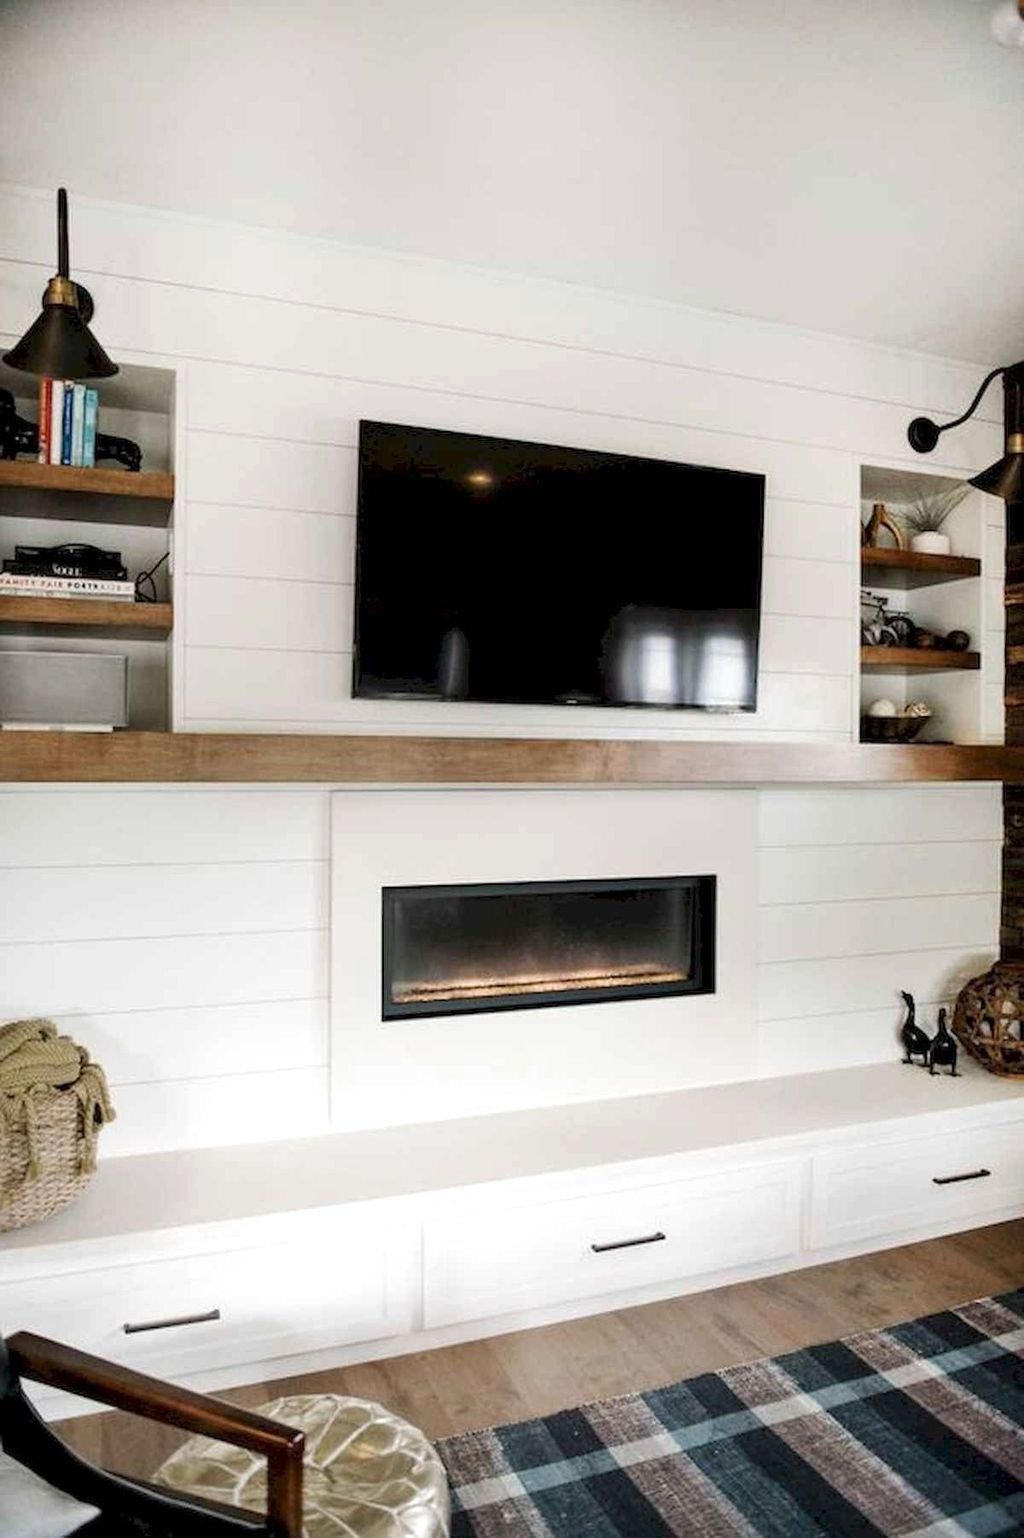 33 Stunning Modern Fireplace Design Ideas With Tv Above In 2020